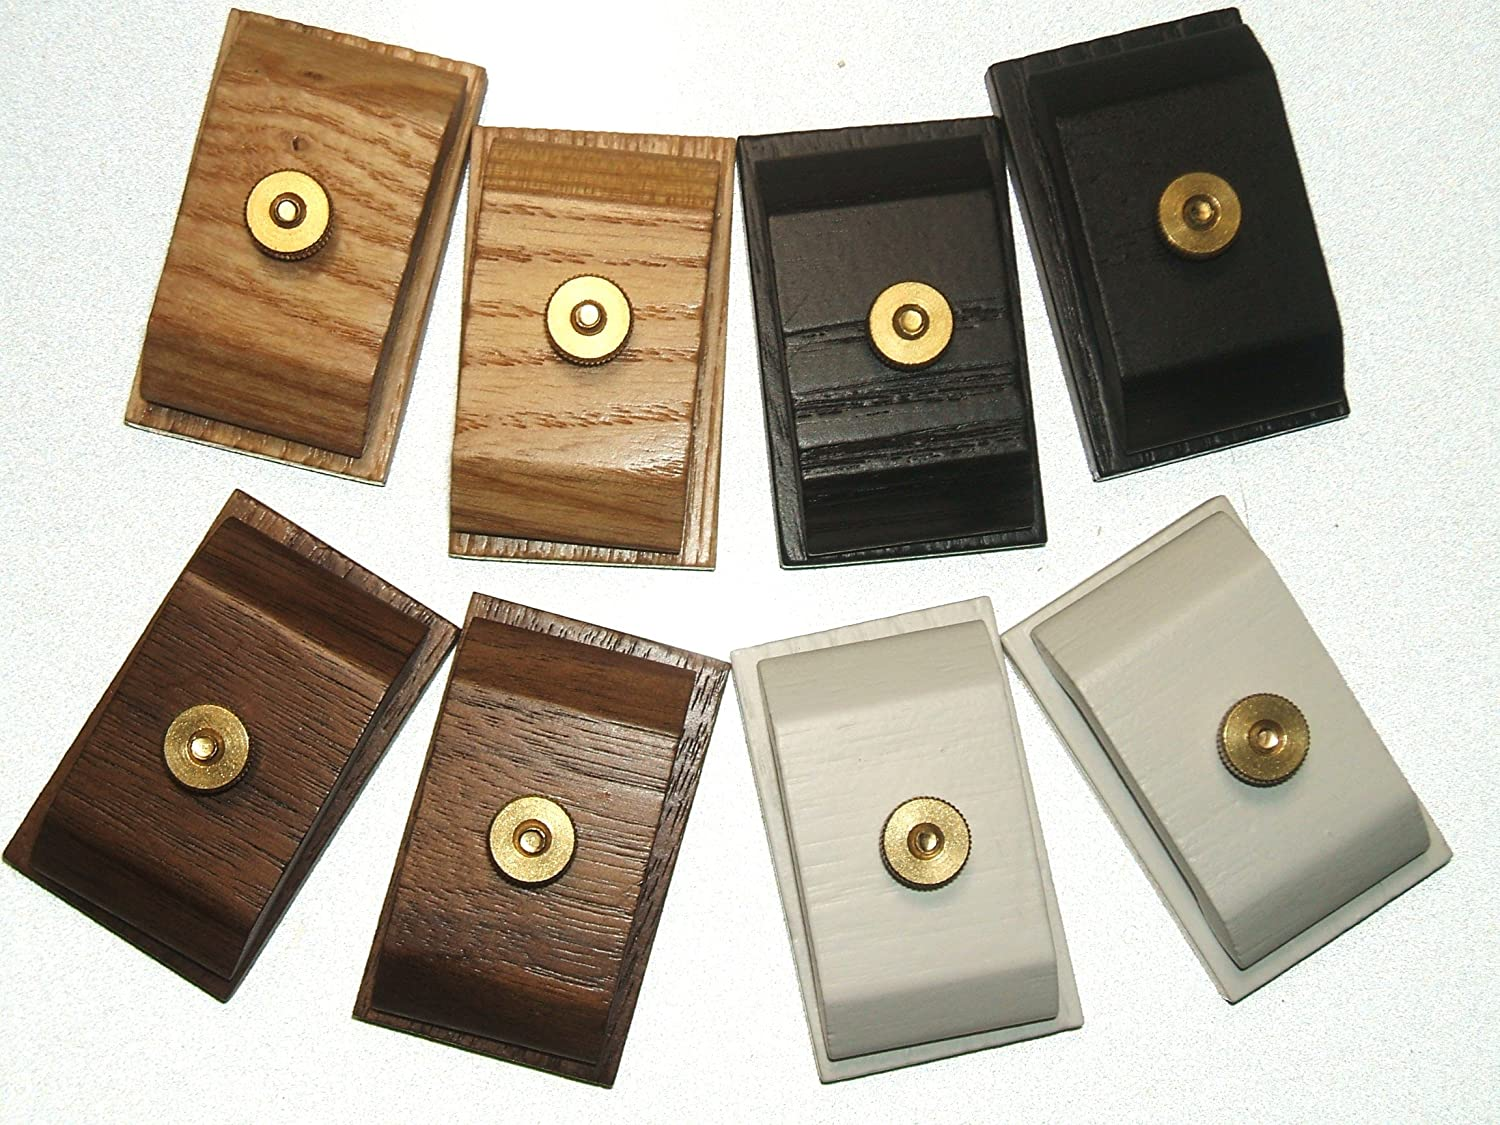 Amazon.com: 1 Pair Mini Ash Wood Hang Ups Quilt Clamps Clips   Small:  Kitchen U0026 Dining